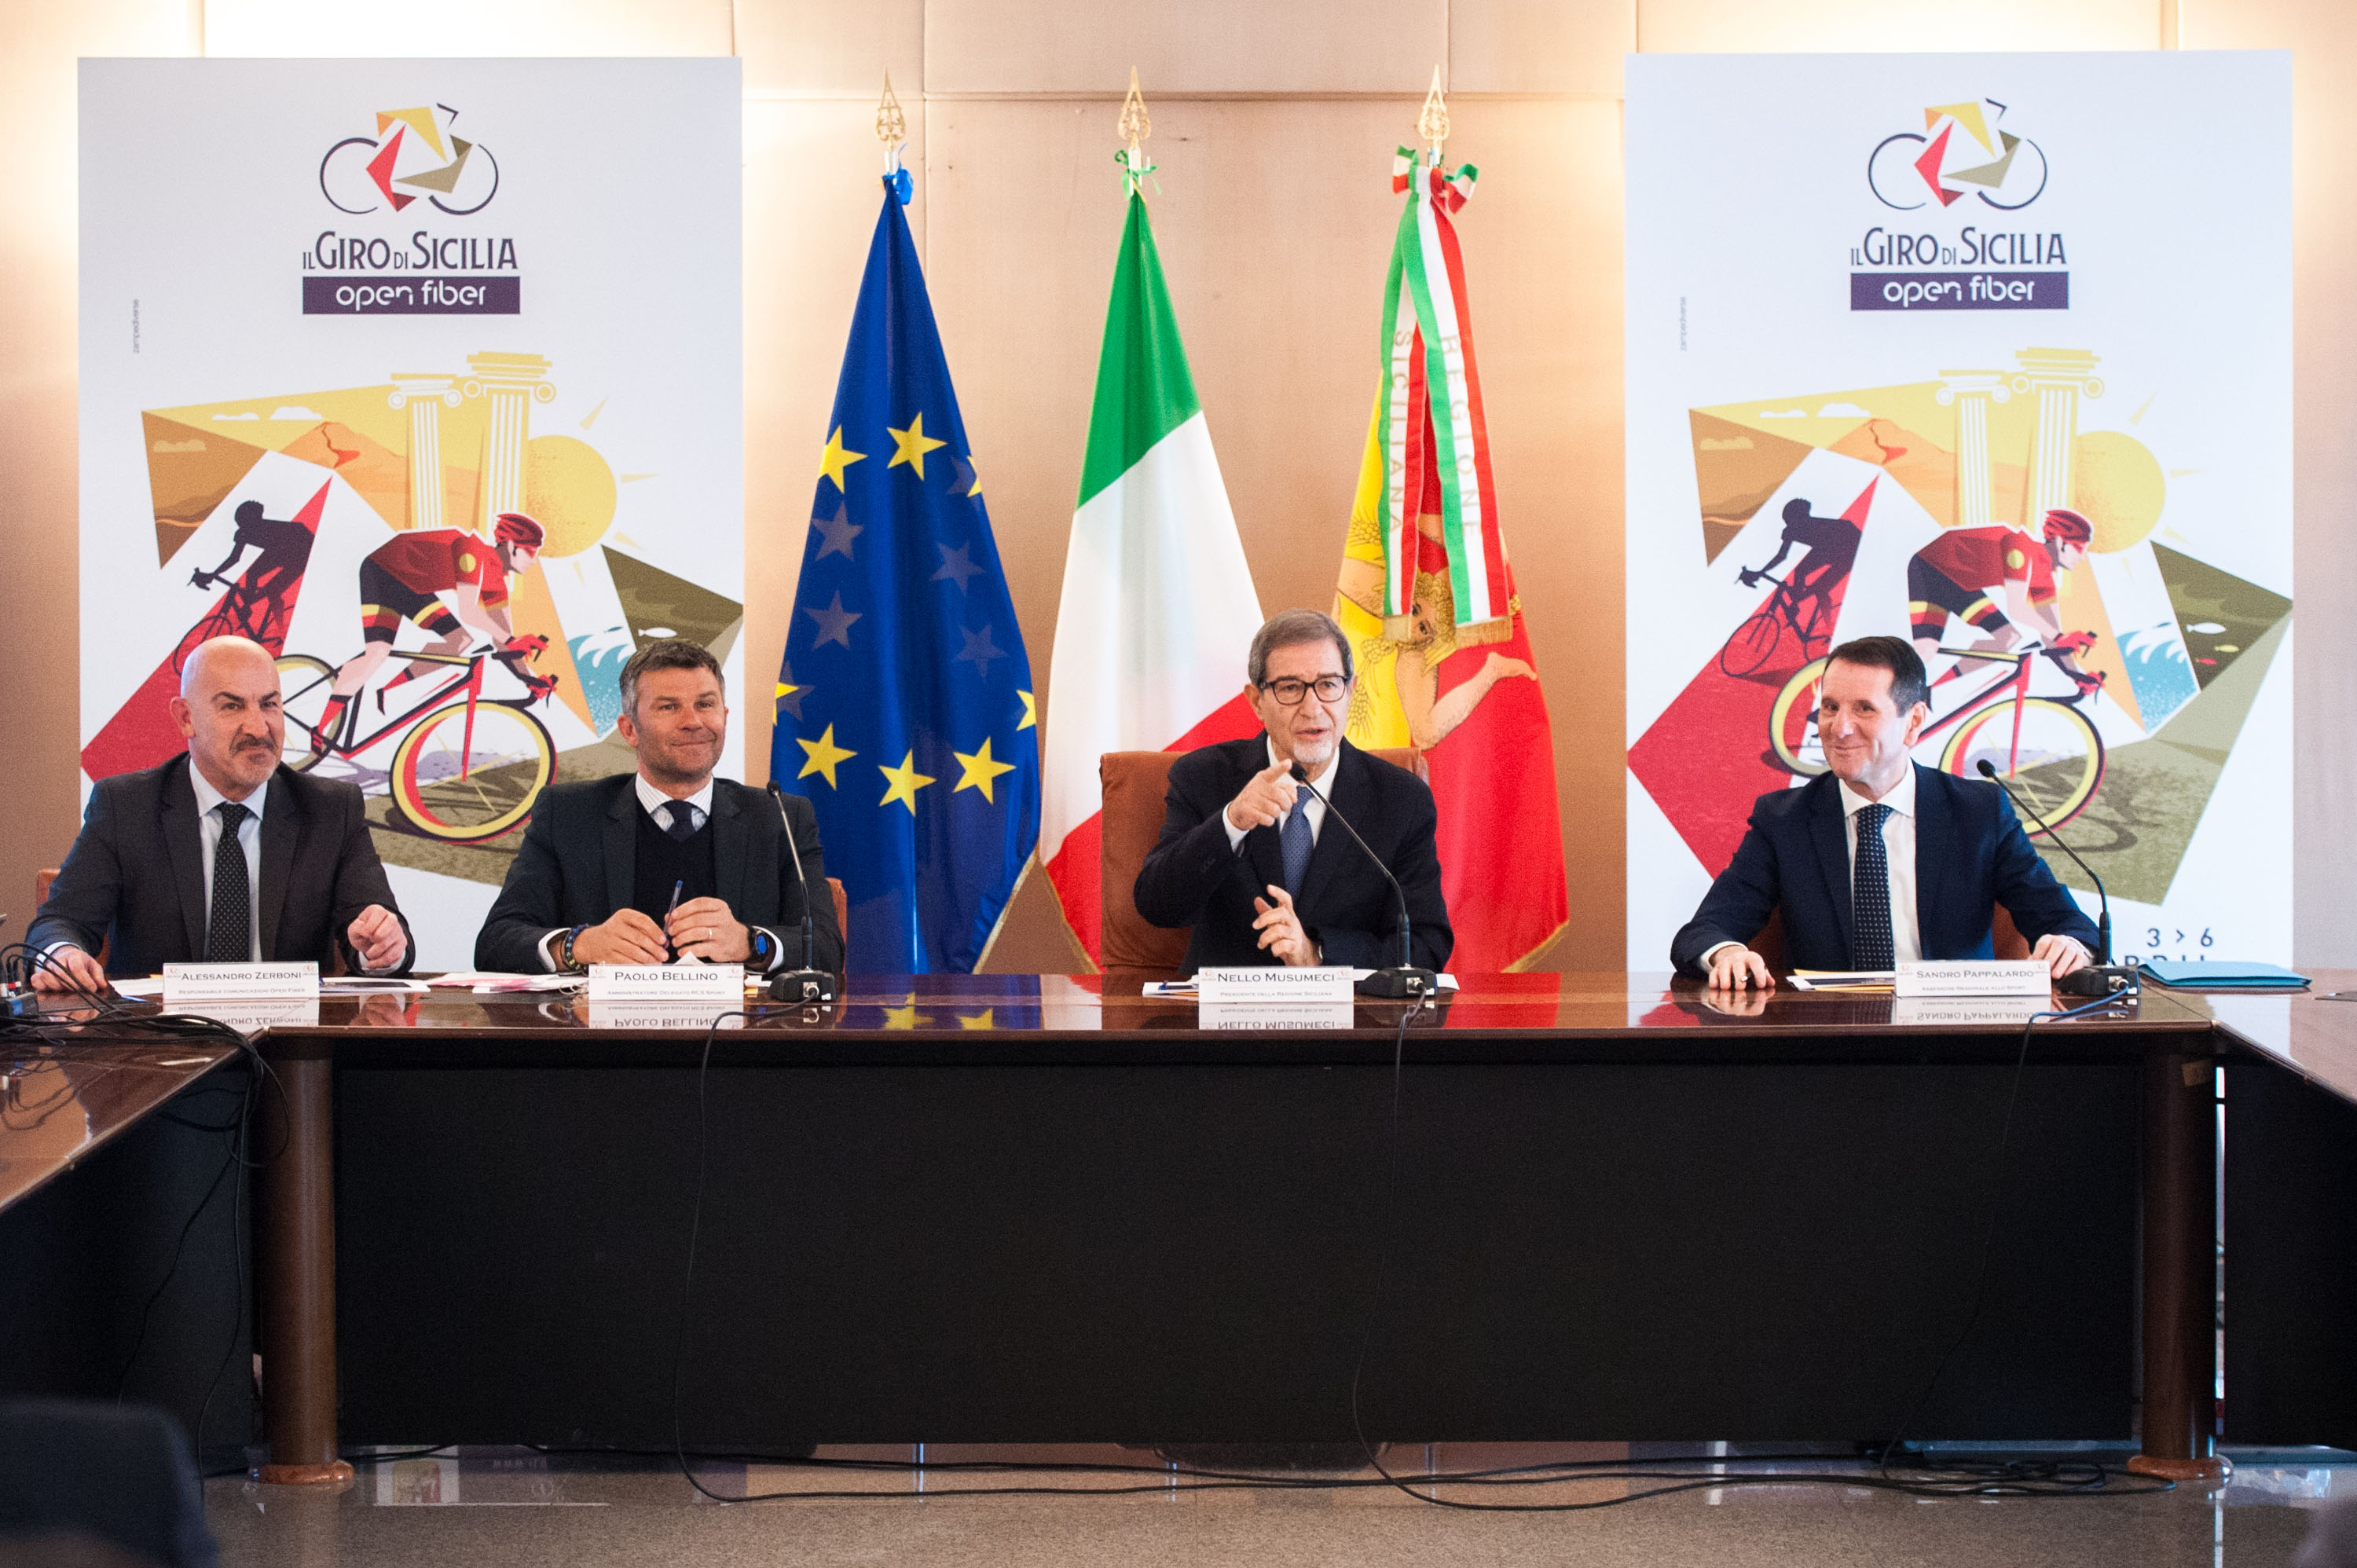 IL GIRO DI SICILIA IS BACK AFTER 42 YEARS